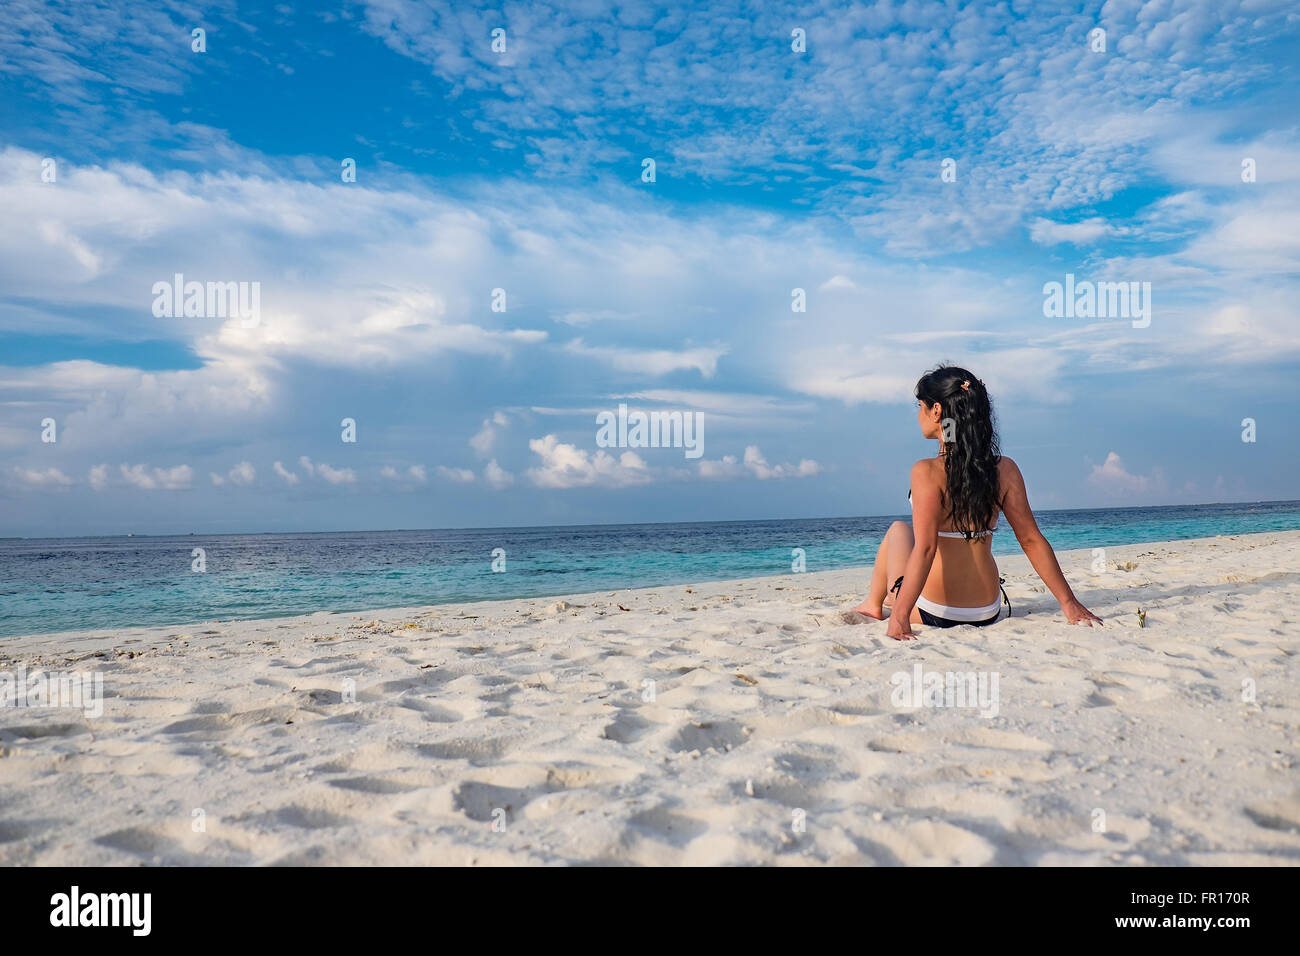 Beach vacation. Girl and tropical beach in the Maldives. - Stock Image